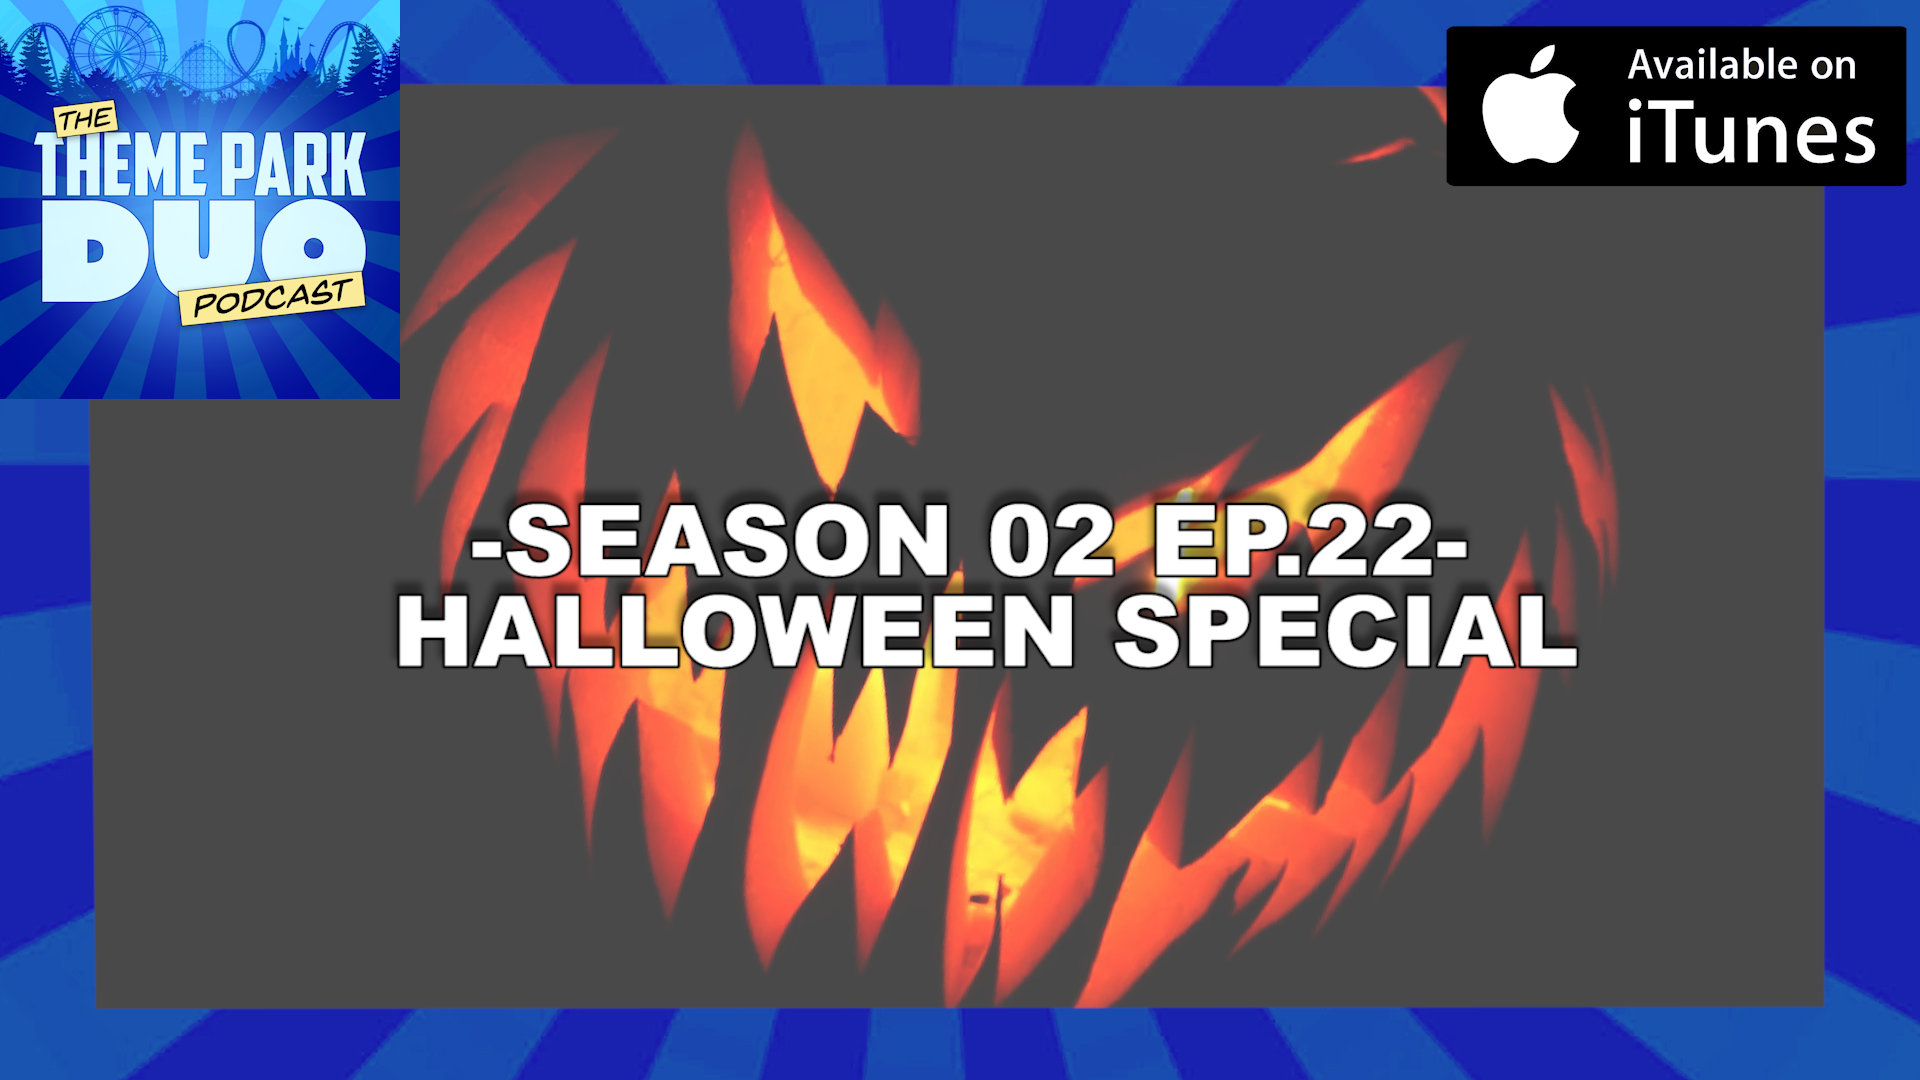 the theme park duo podcast: season 02 episode 22 – halloween special